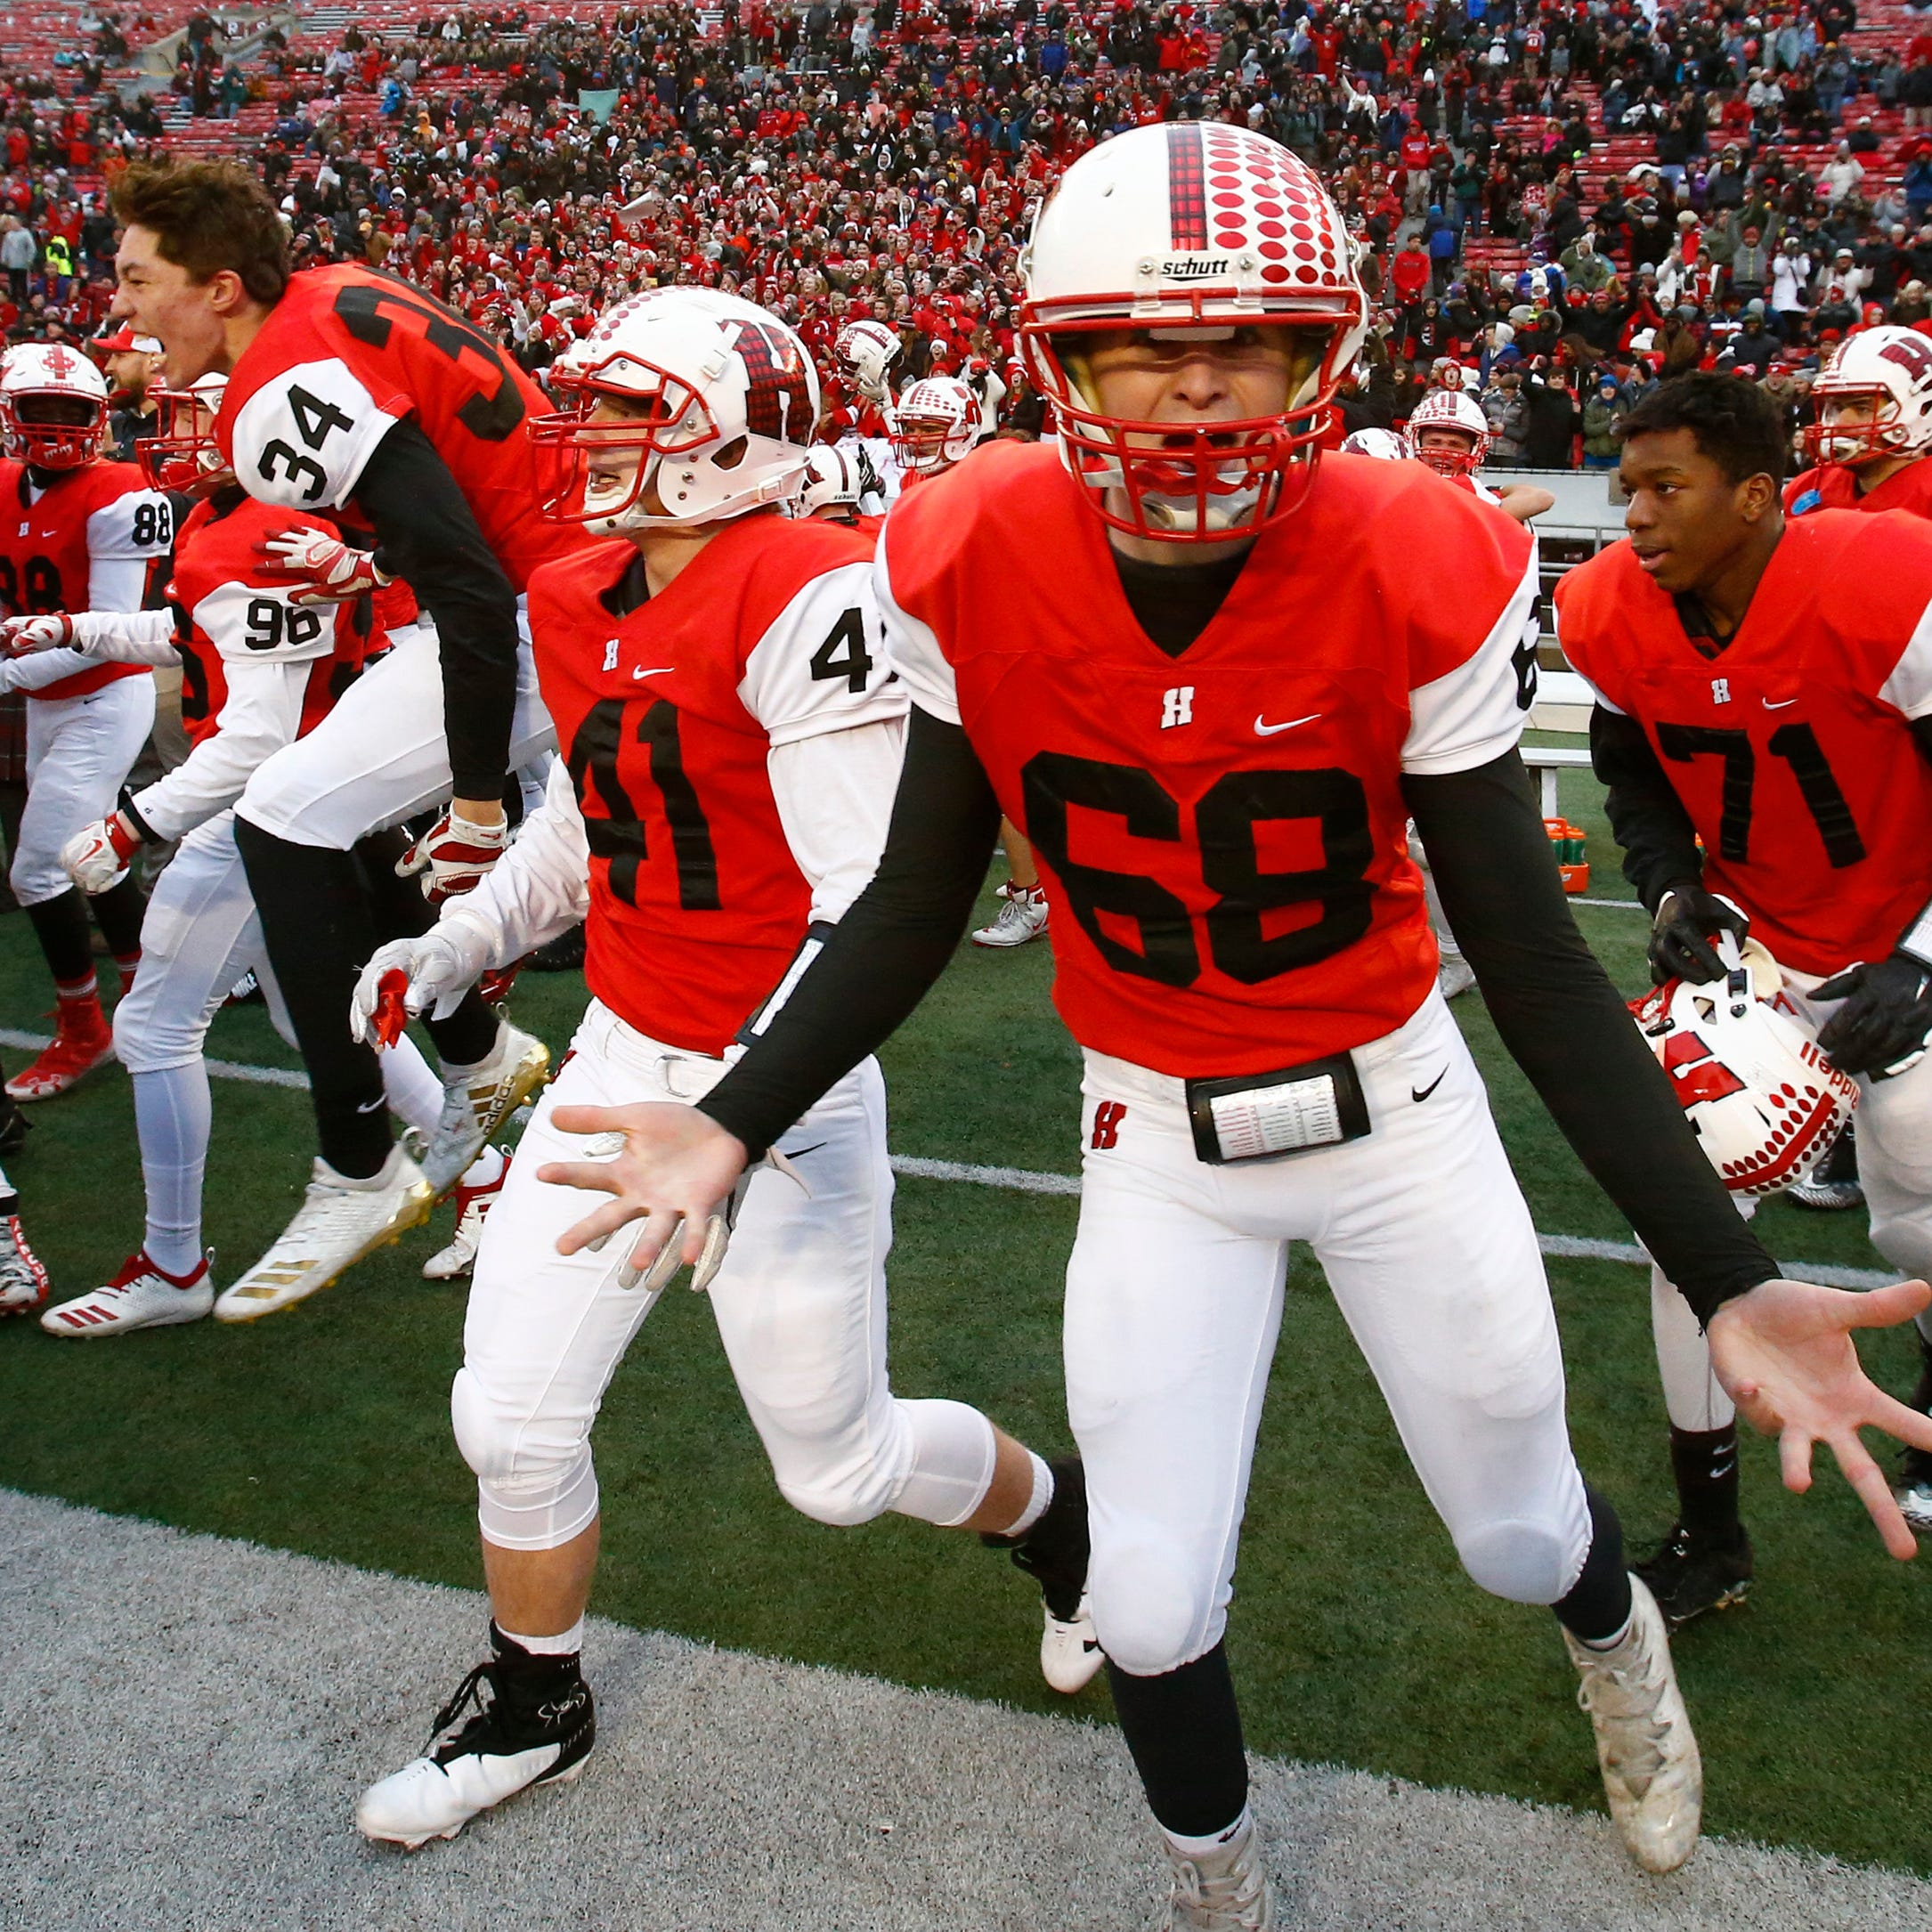 WIAA gives final approval to the football-only conference plan. New leagues will start in 2020